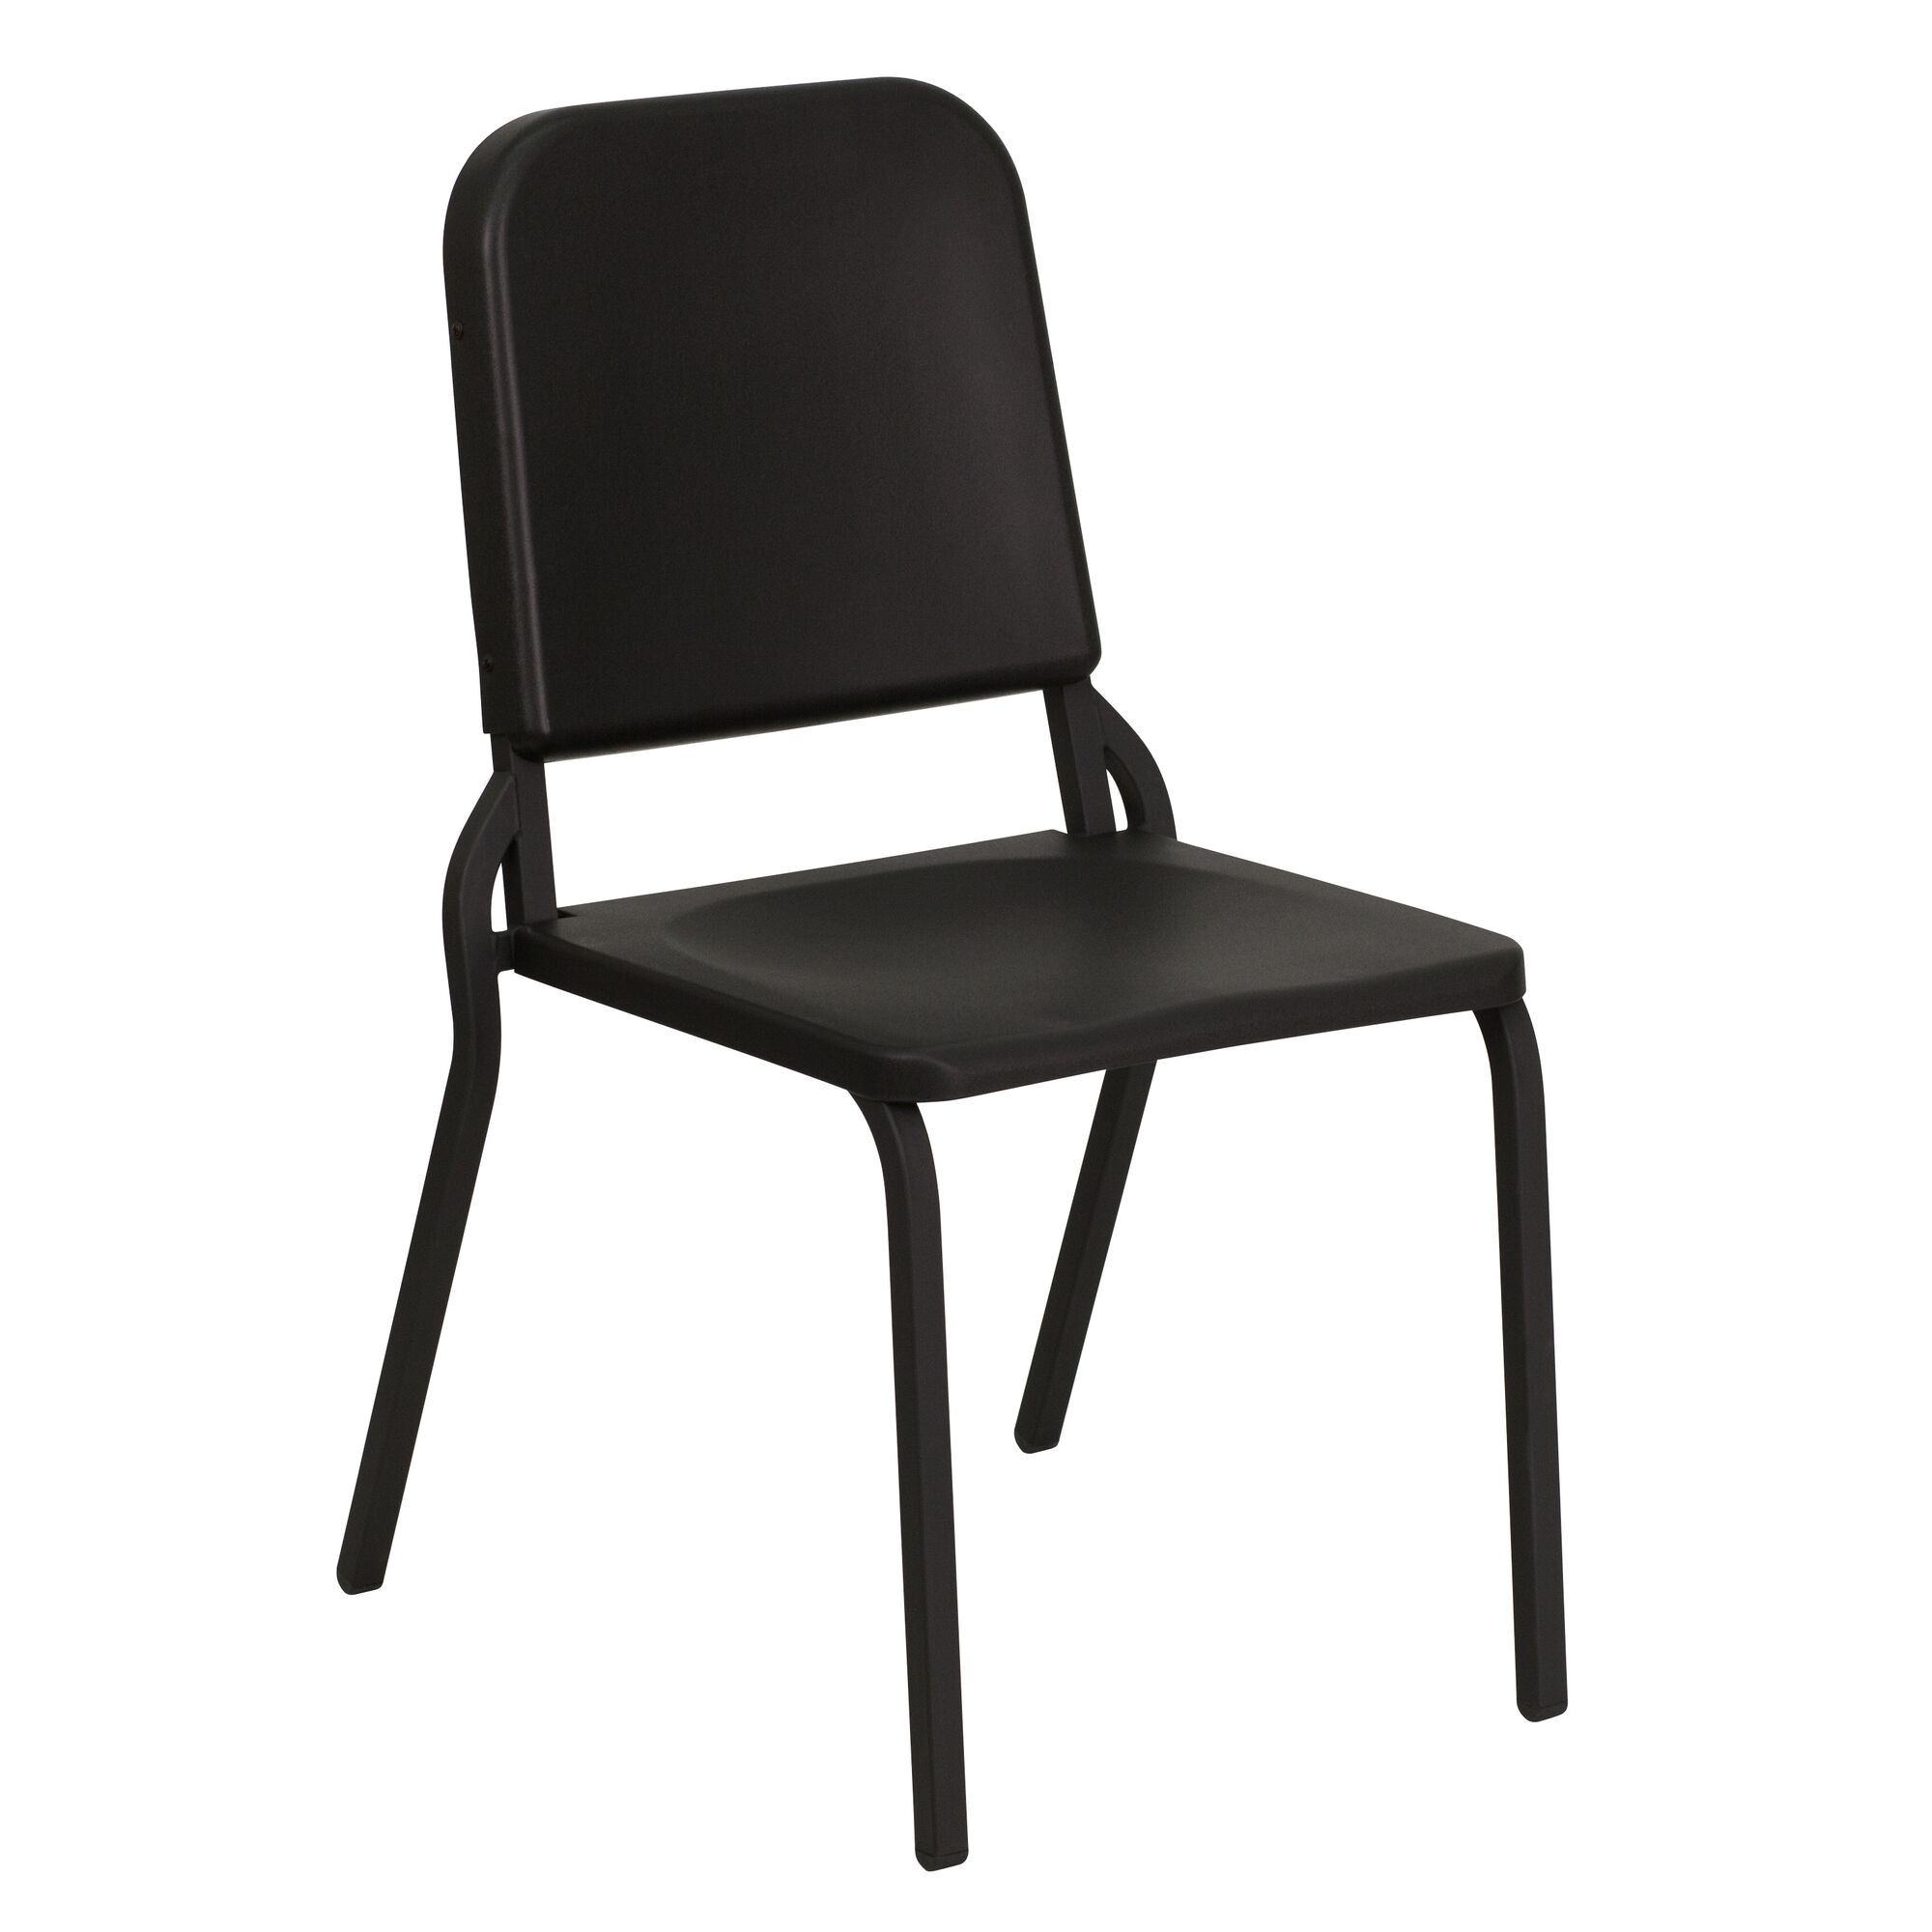 black melody band music chair hf music gg bizchair com